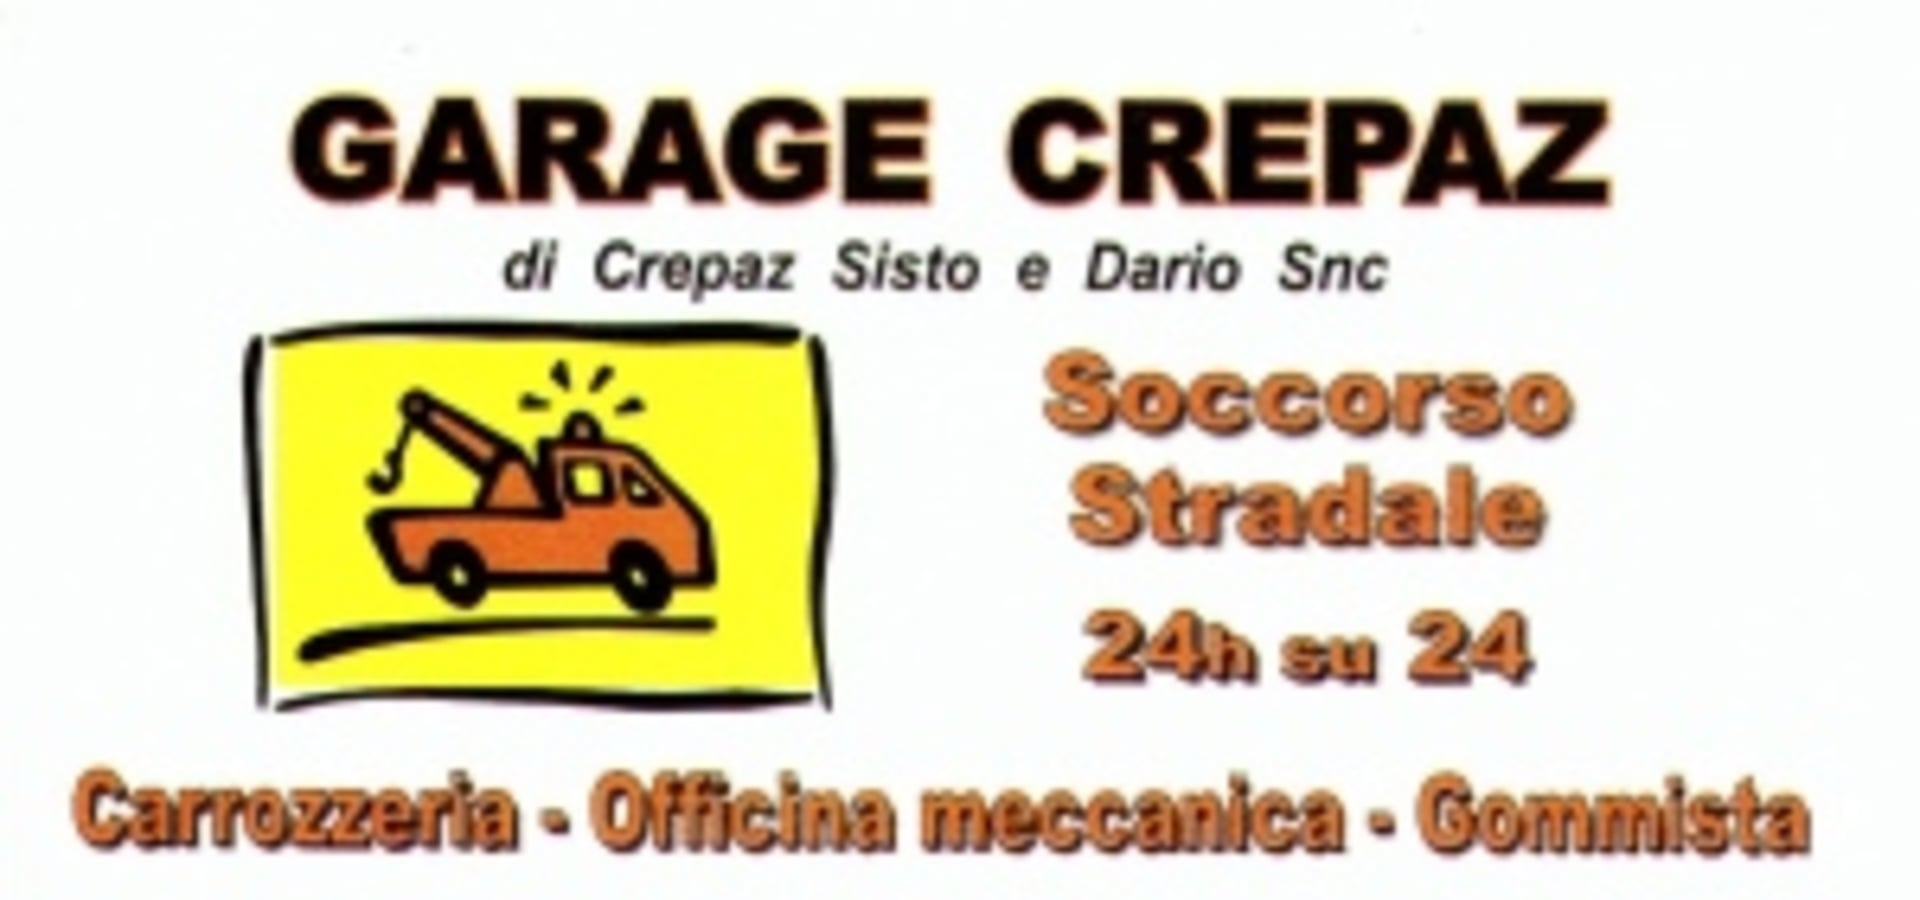 Mechanic-shop Garage Crepaz